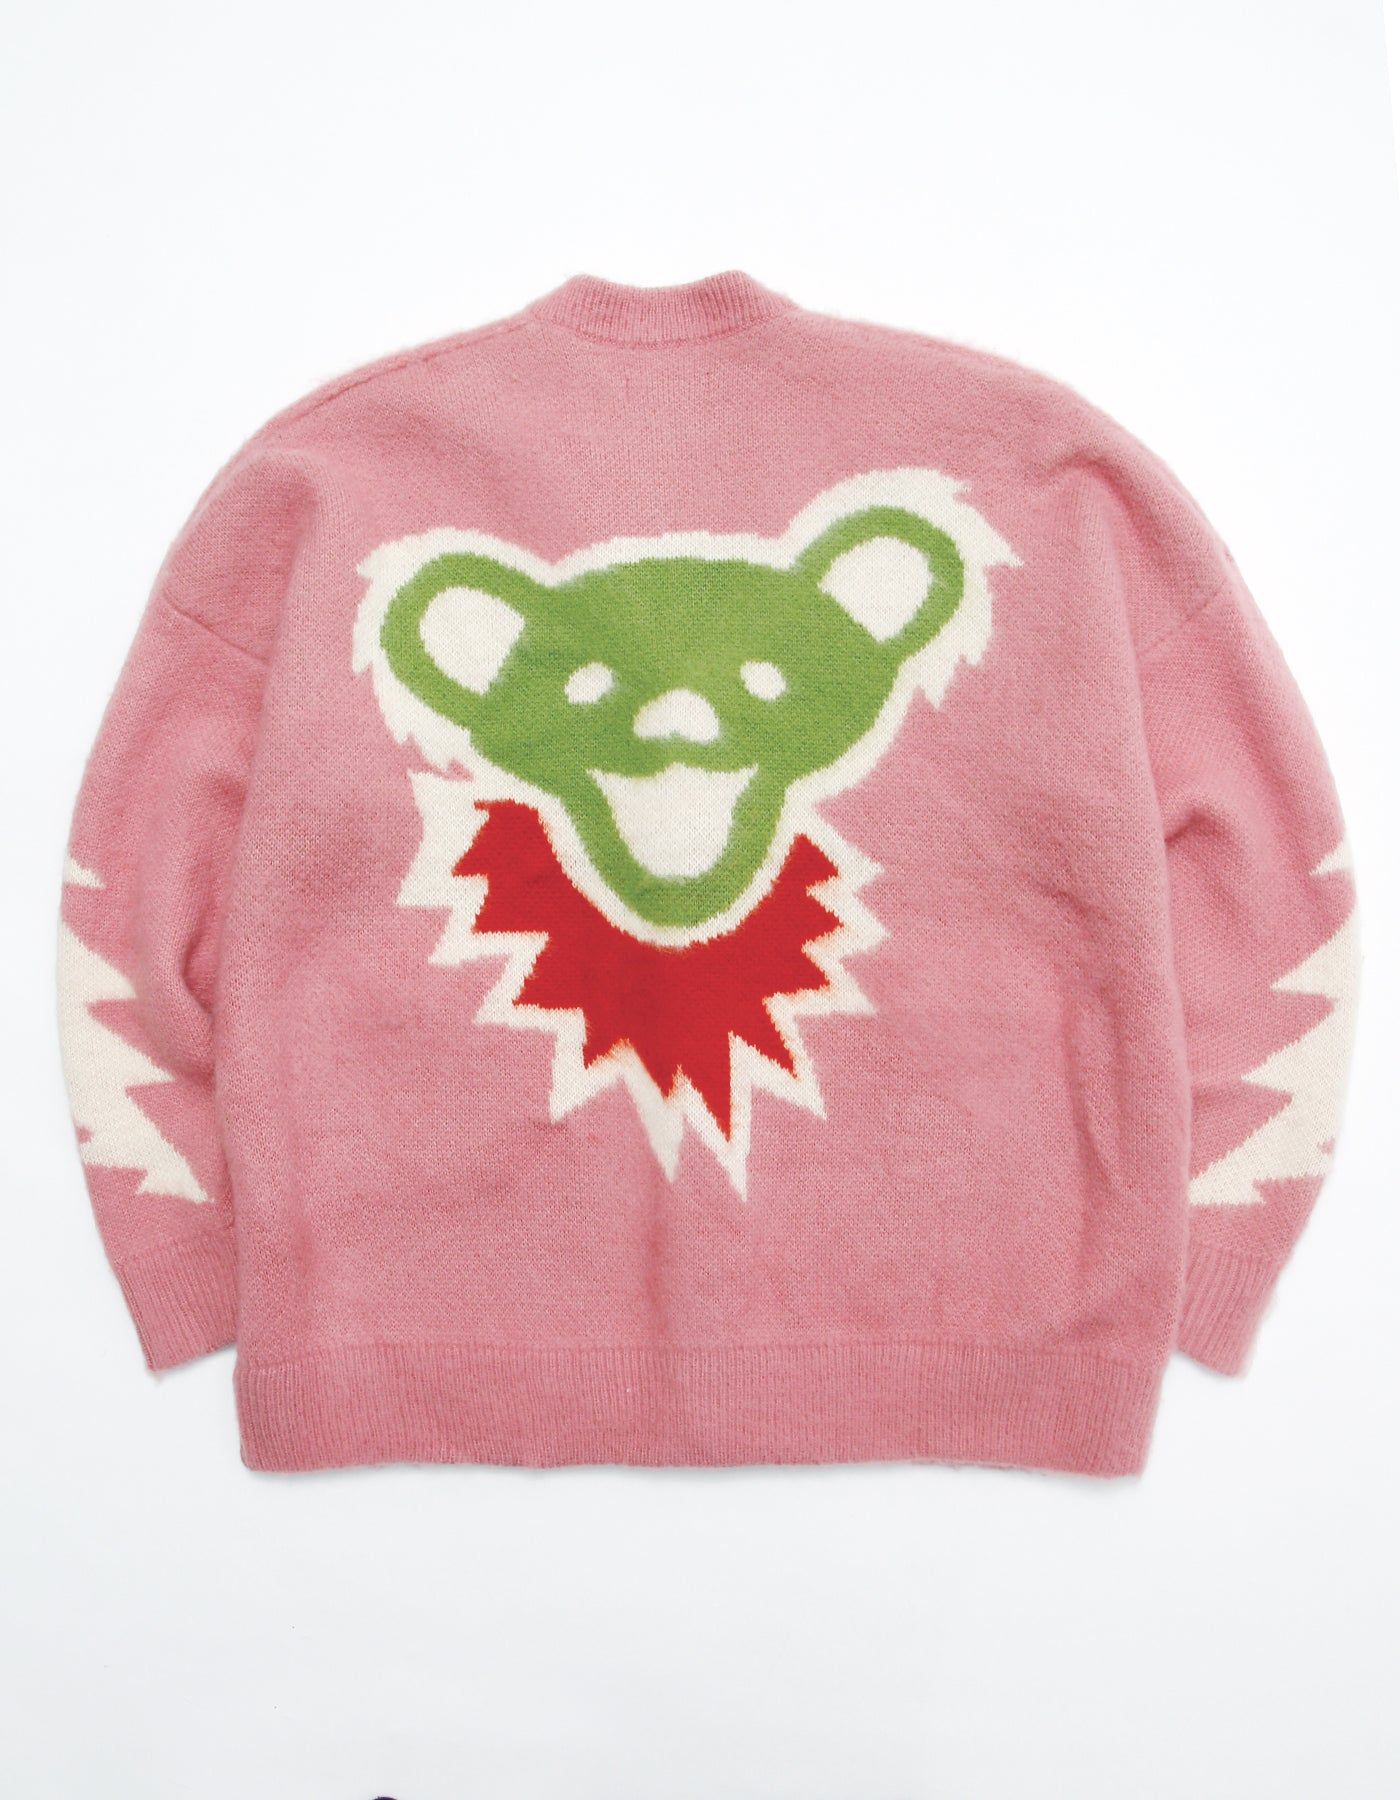 Grateful Dead x little sunny bite Knit cardigan / PINK